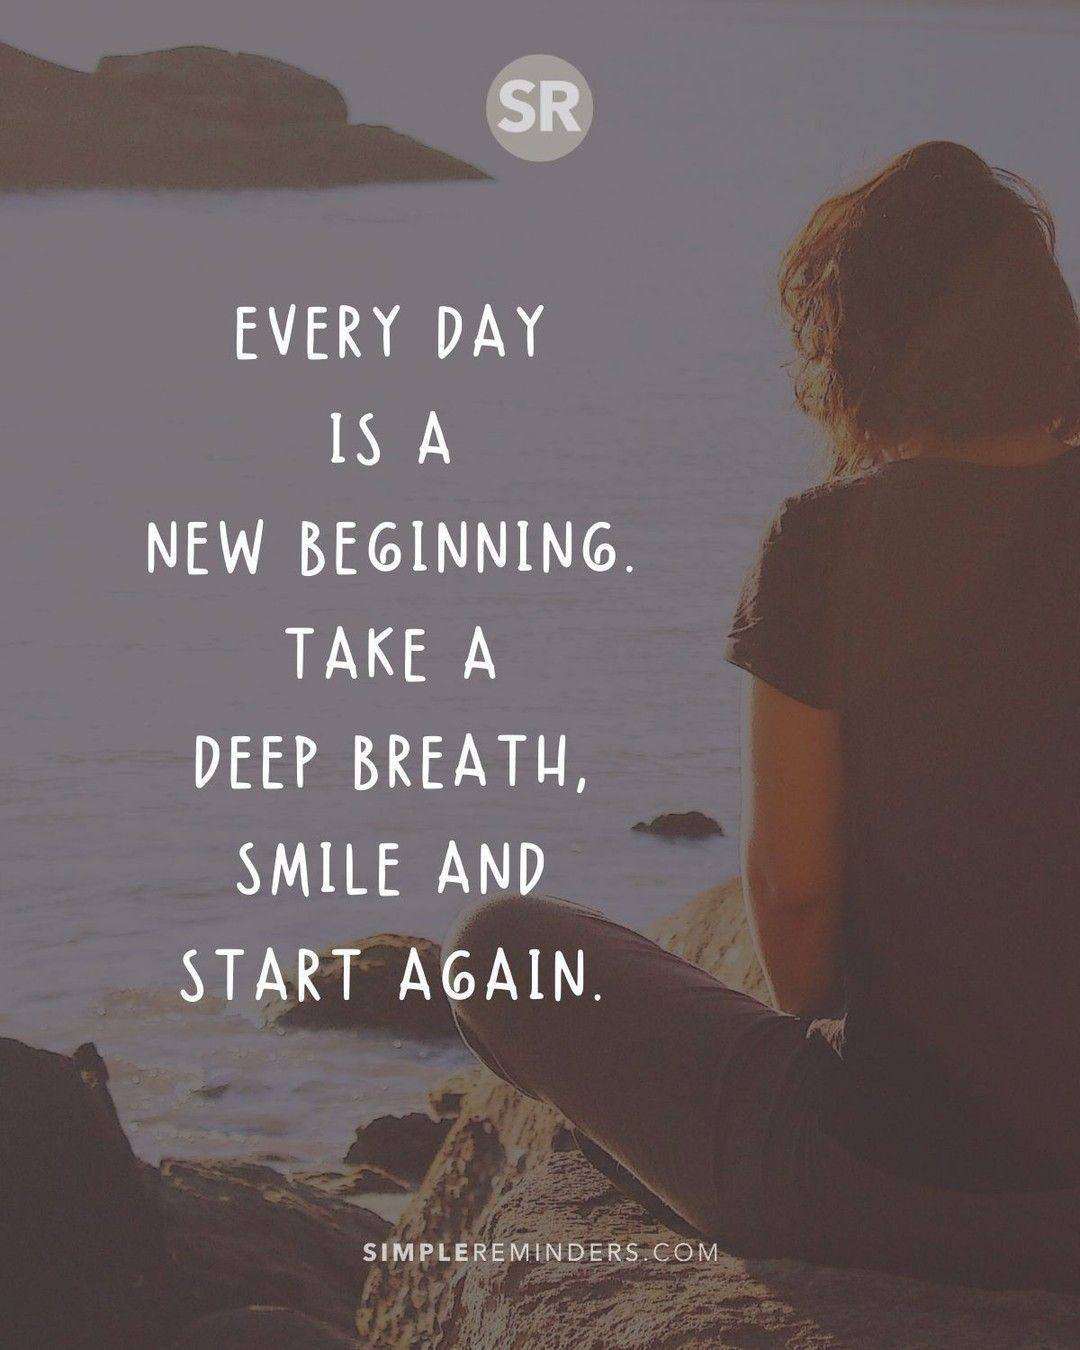 Every Day Is A New Beginning Take A Deep Breath Smile And Start Again Jenniyoungmcgill Bryan New Beginning Quotes New Beginning Quotes Life New Day Quotes